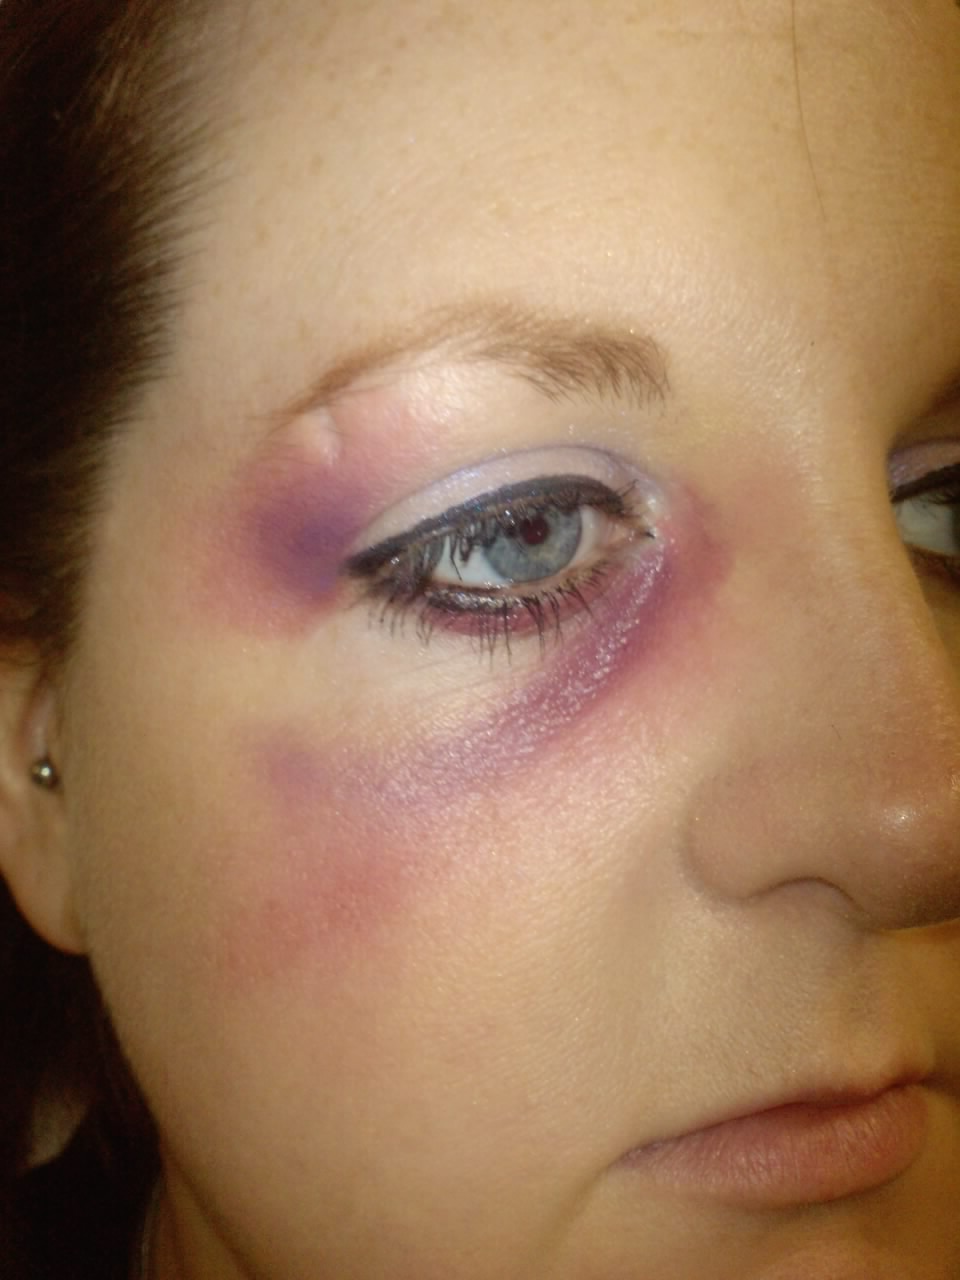 Makeup Ideas bruise makeup : Makeup by Gill: Special Effects - Cuts u0026 Bruises 1